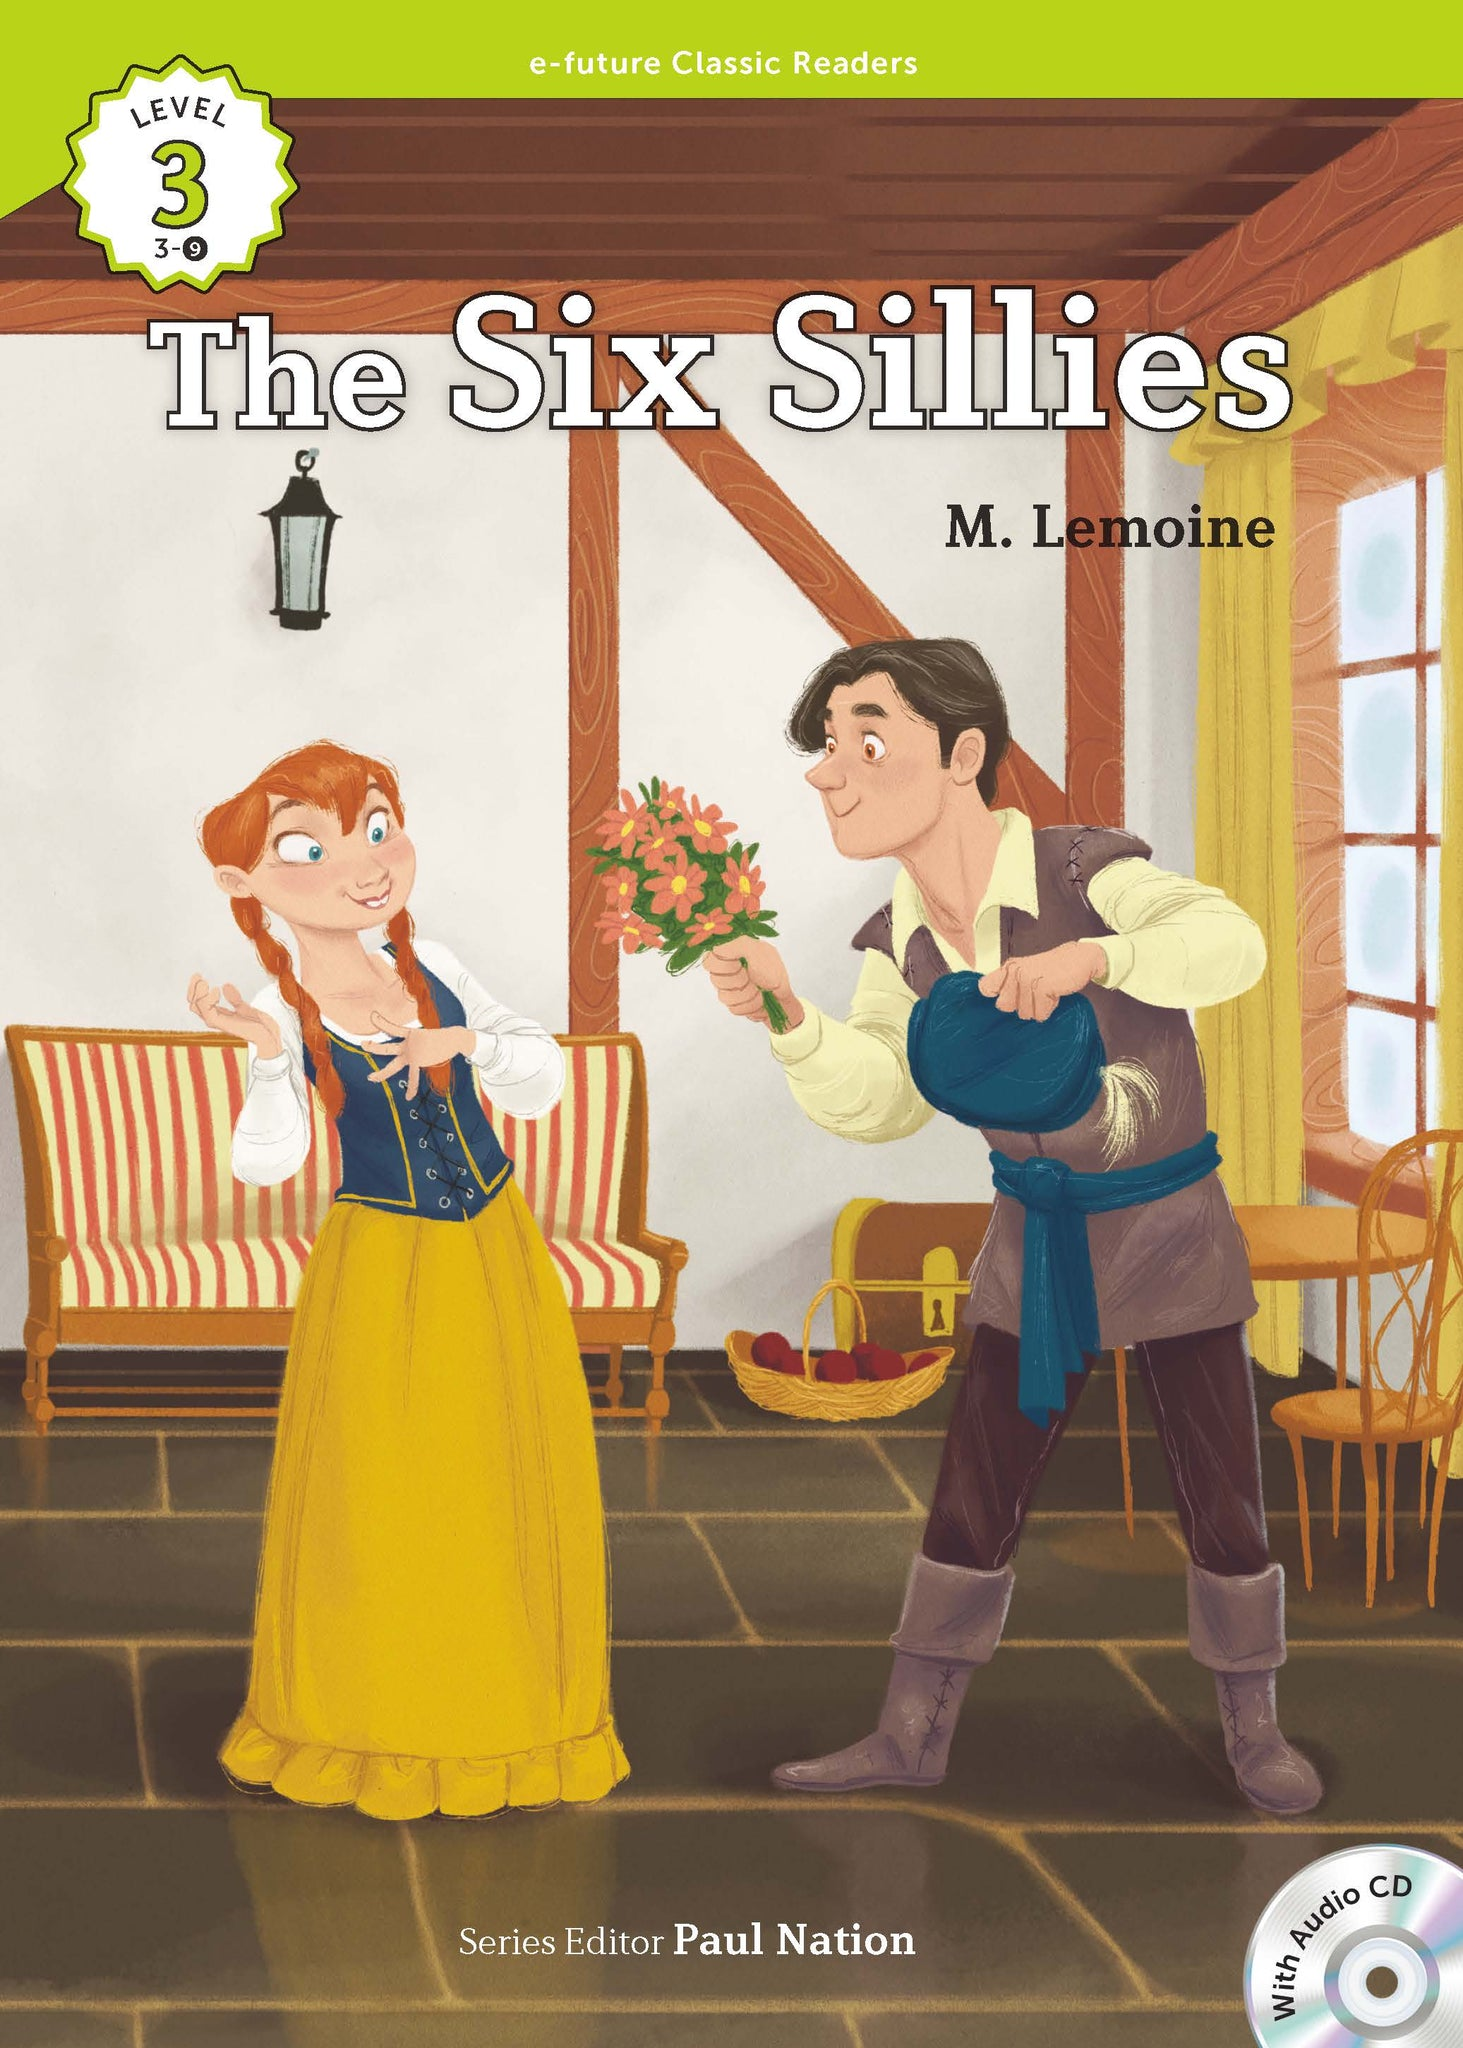 EF Classic Readers Level 3, Book 9: The Six Sillies